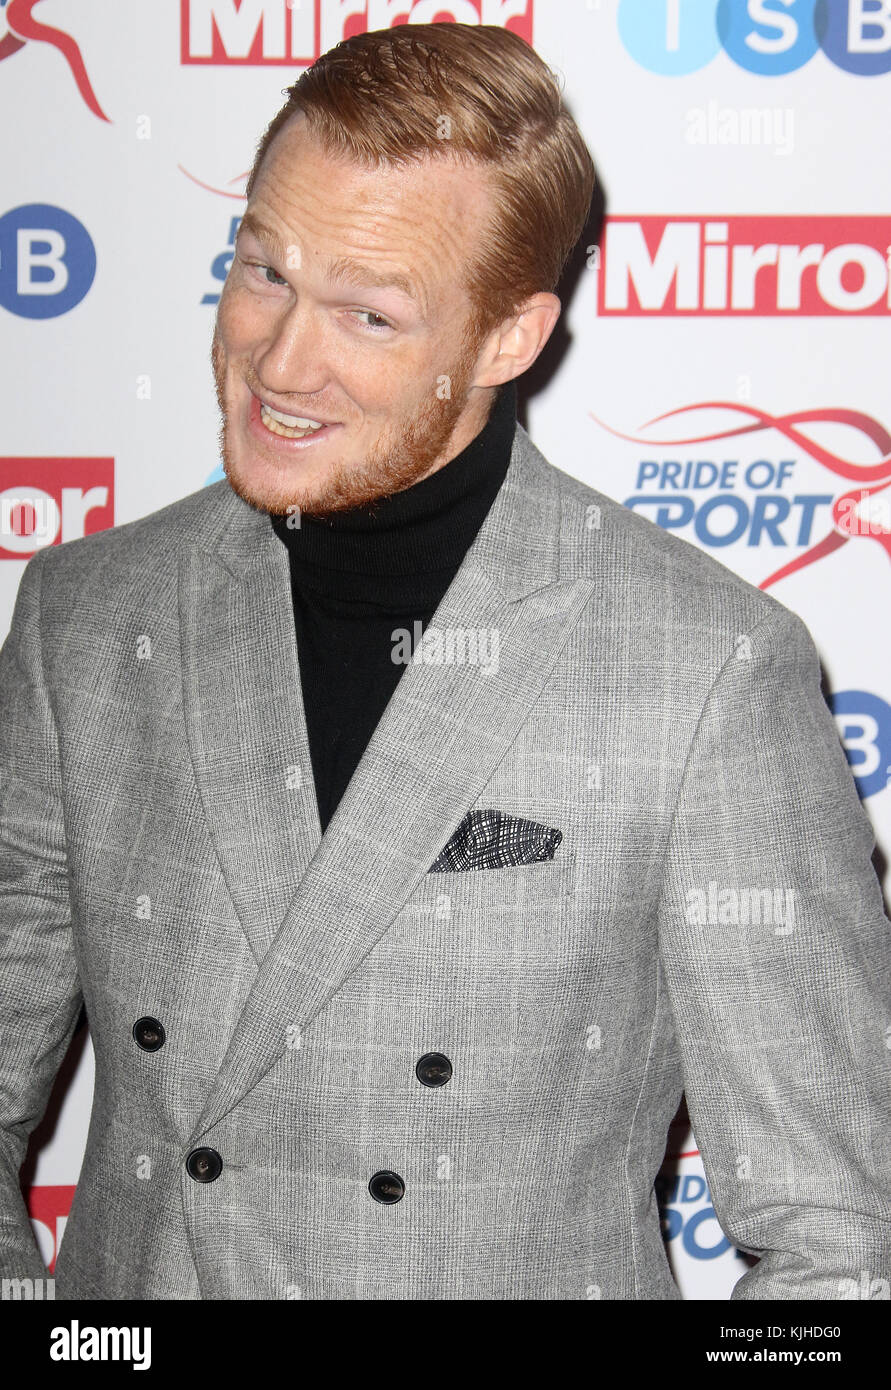 Nov 22, 2017 - Greg Rutherford attending Pride of Sport Awards 2017, Grosvenor House Hotel in London, England, UK - Stock Image